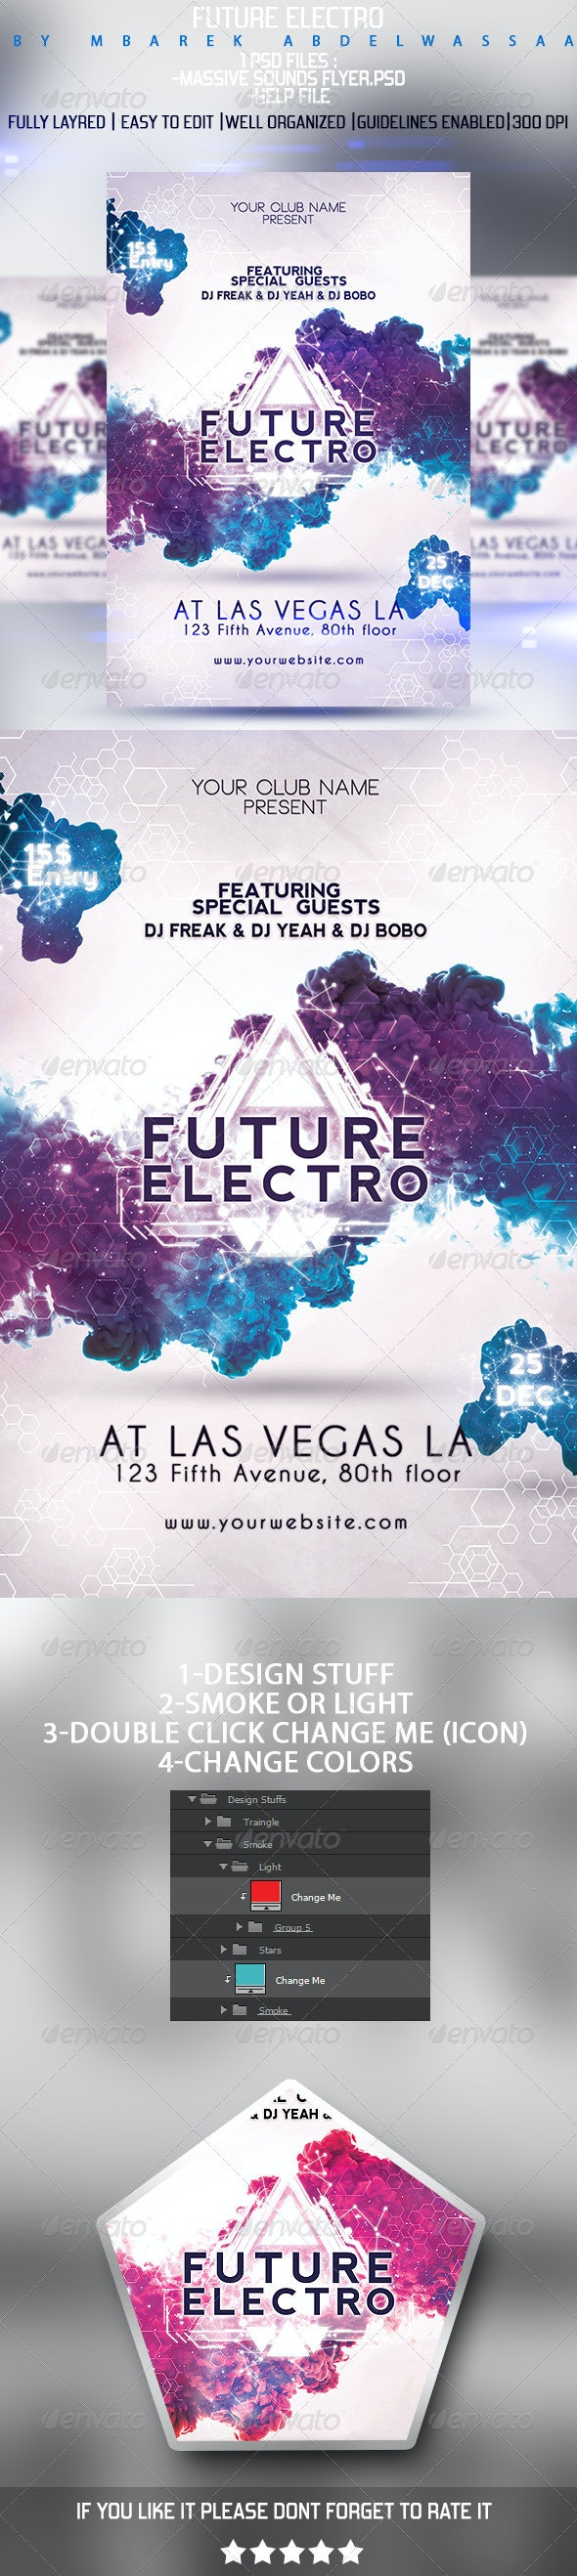 Future Electro Flyer - Events Flyers